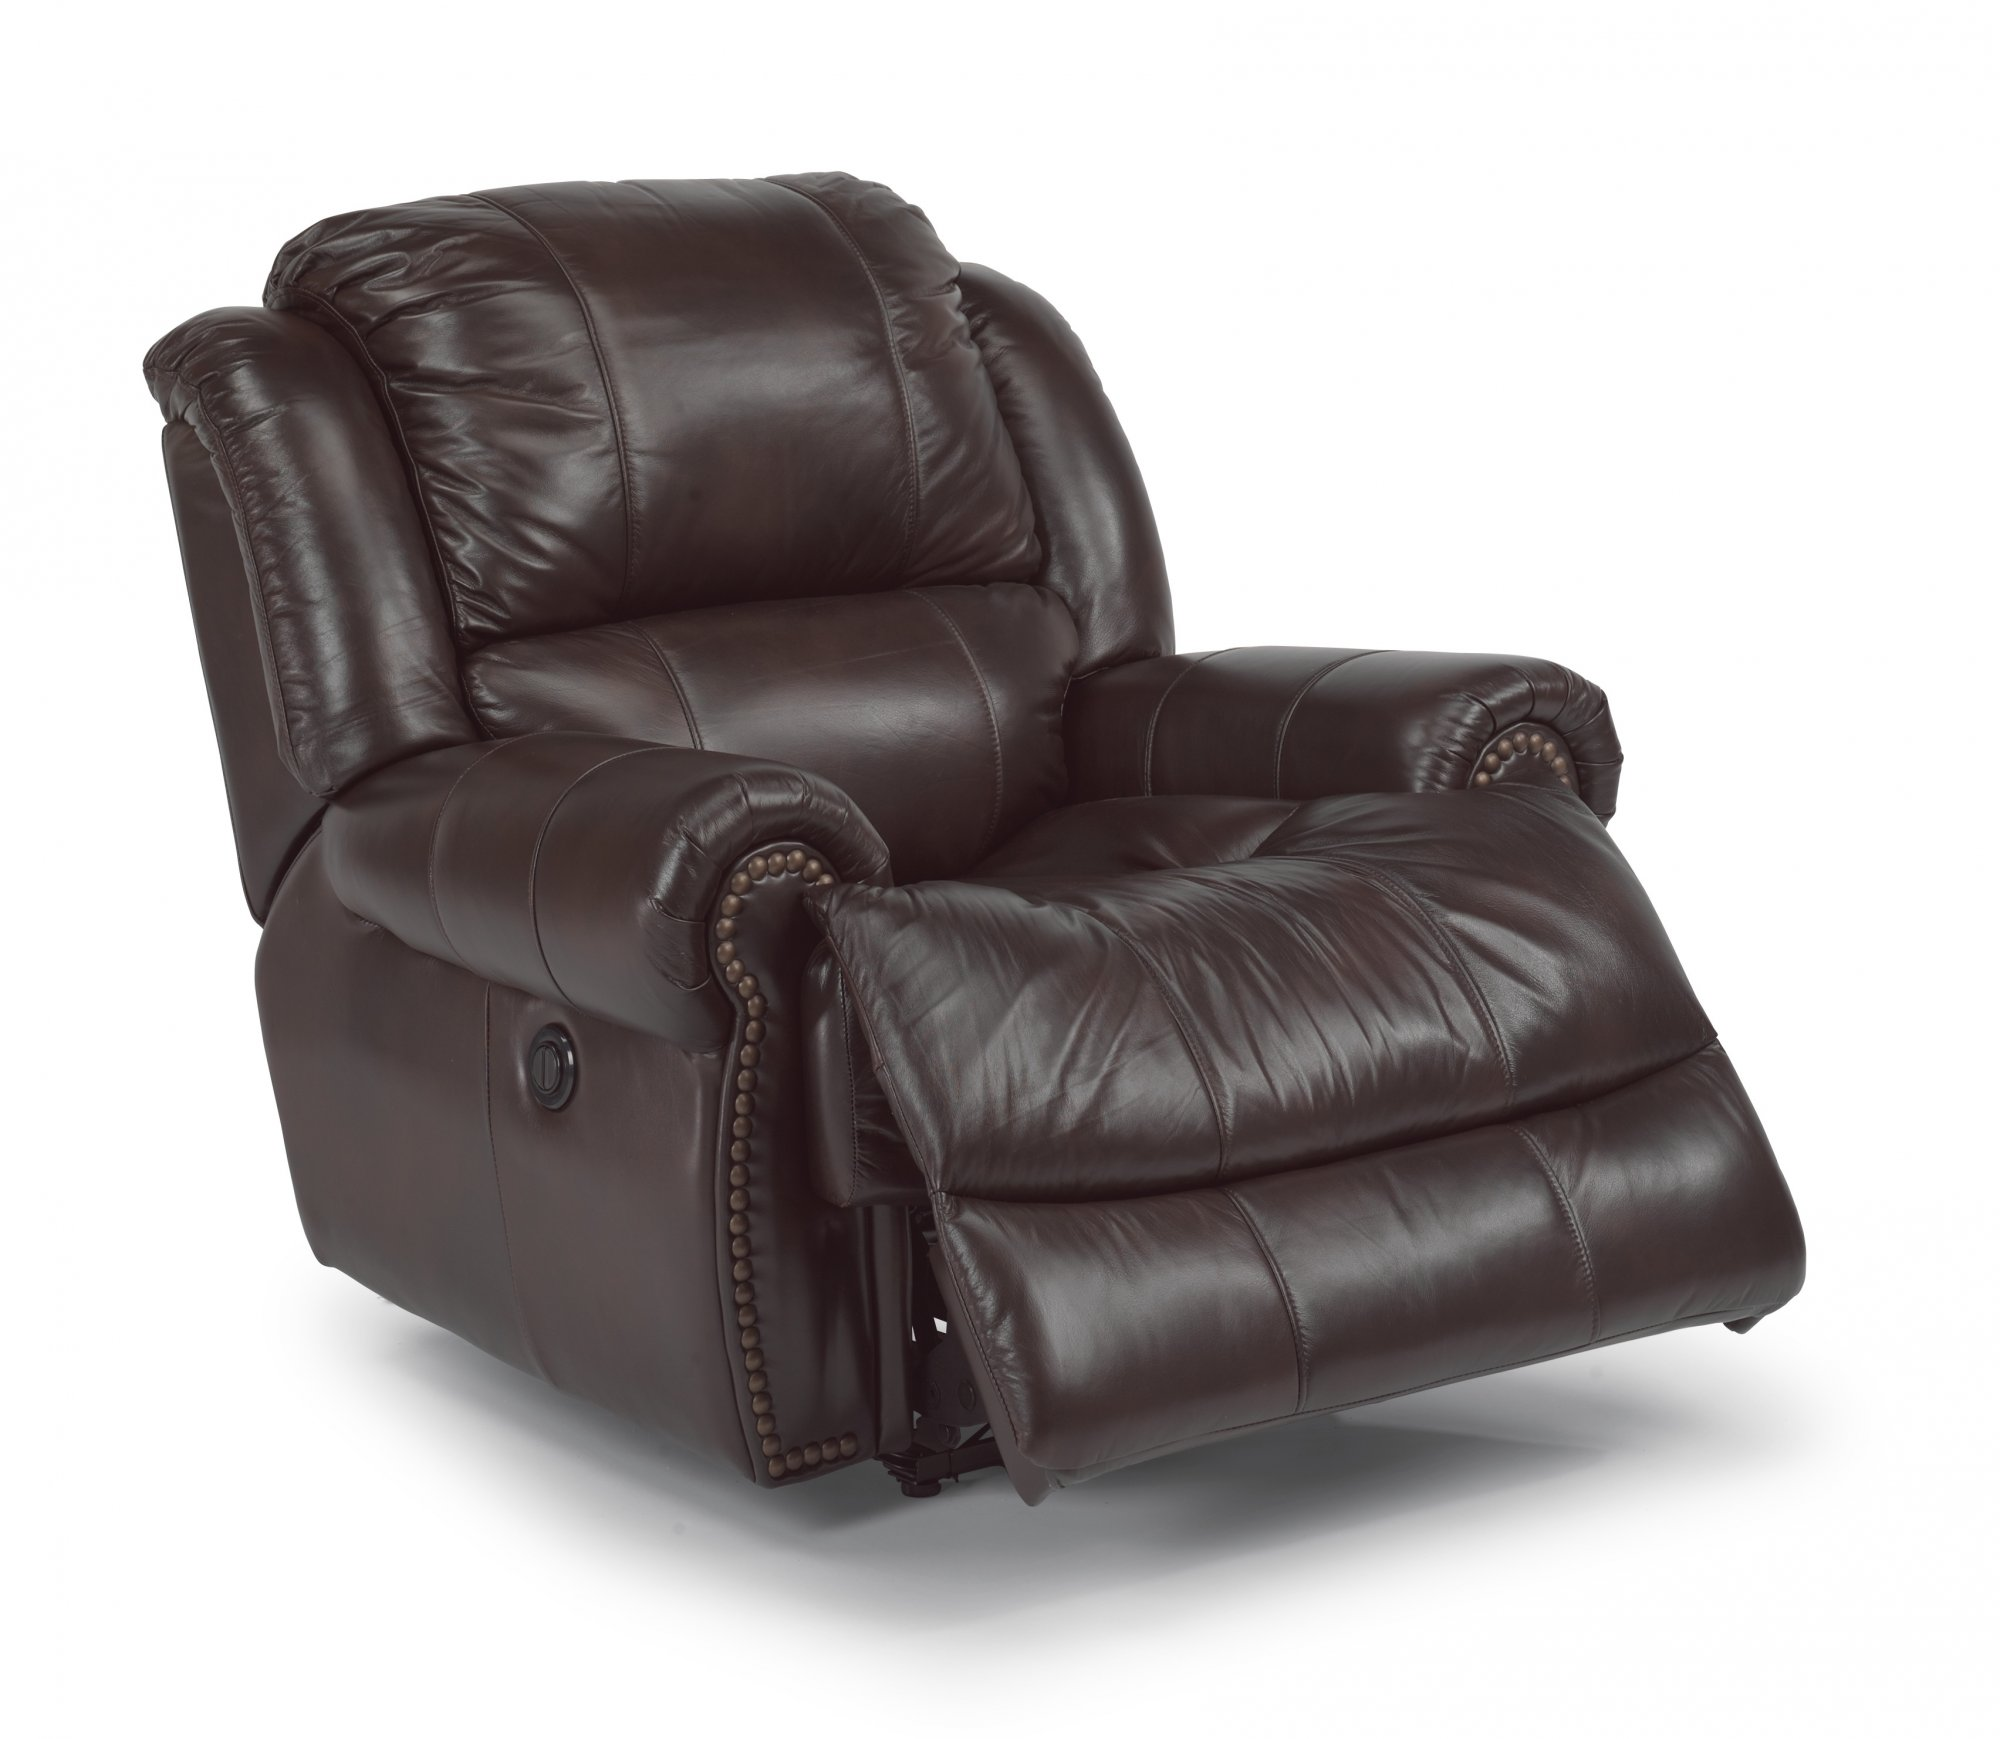 Prime Flexsteel 1311 50P Capitol Leather Power Recliner Caraccident5 Cool Chair Designs And Ideas Caraccident5Info